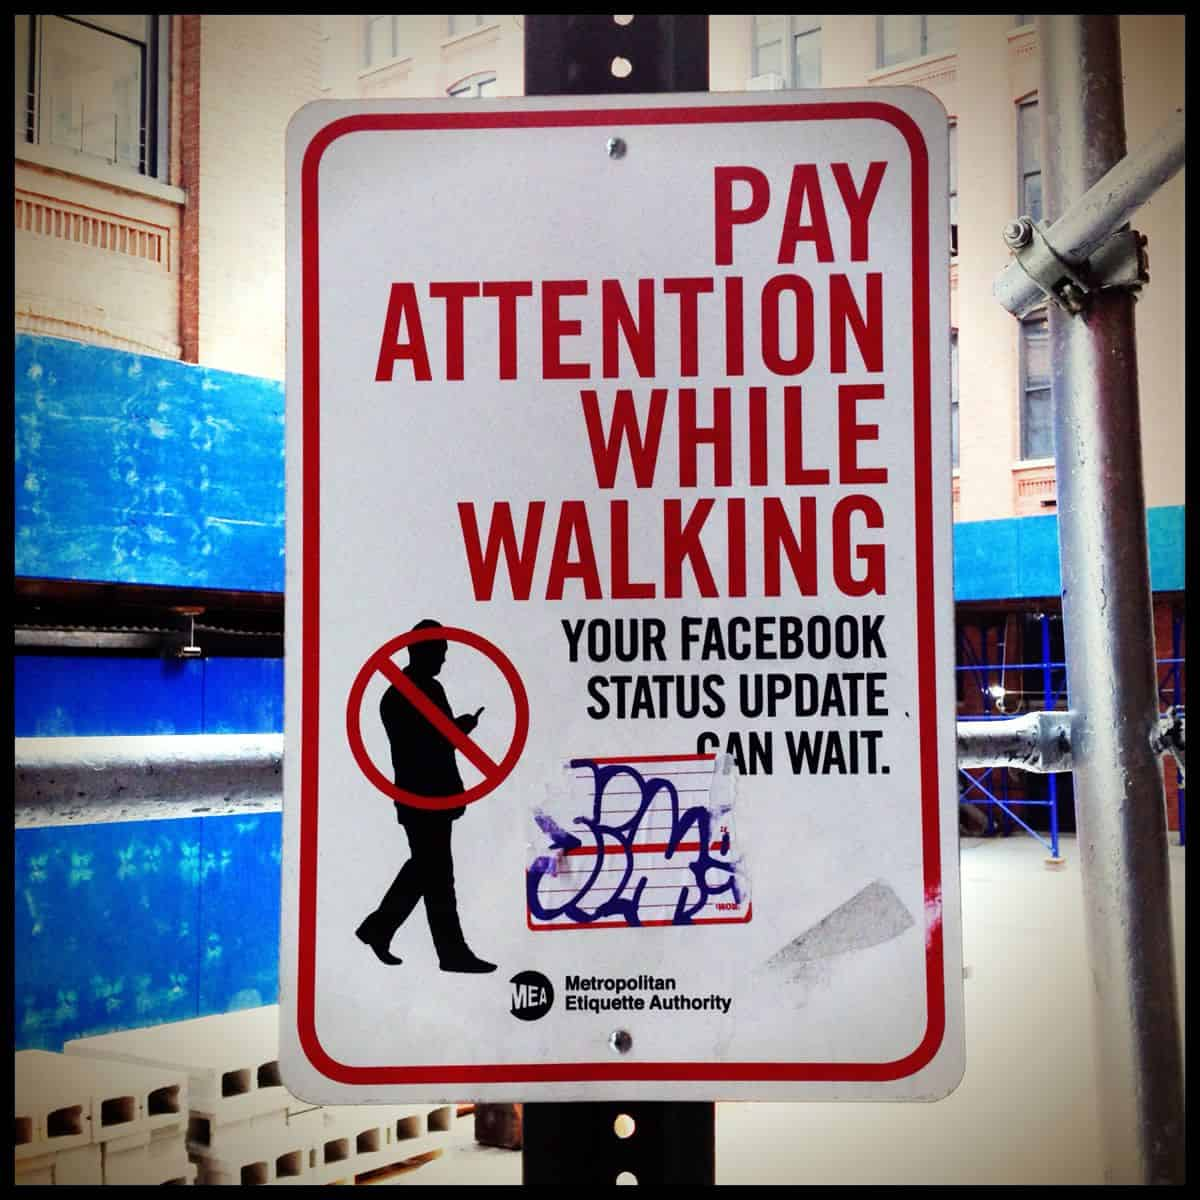 "A street sign shows the silhouette of a person walking while using his mobile phone, with the message, ""Pay attention while walking. Your Facebook status update can wait."""